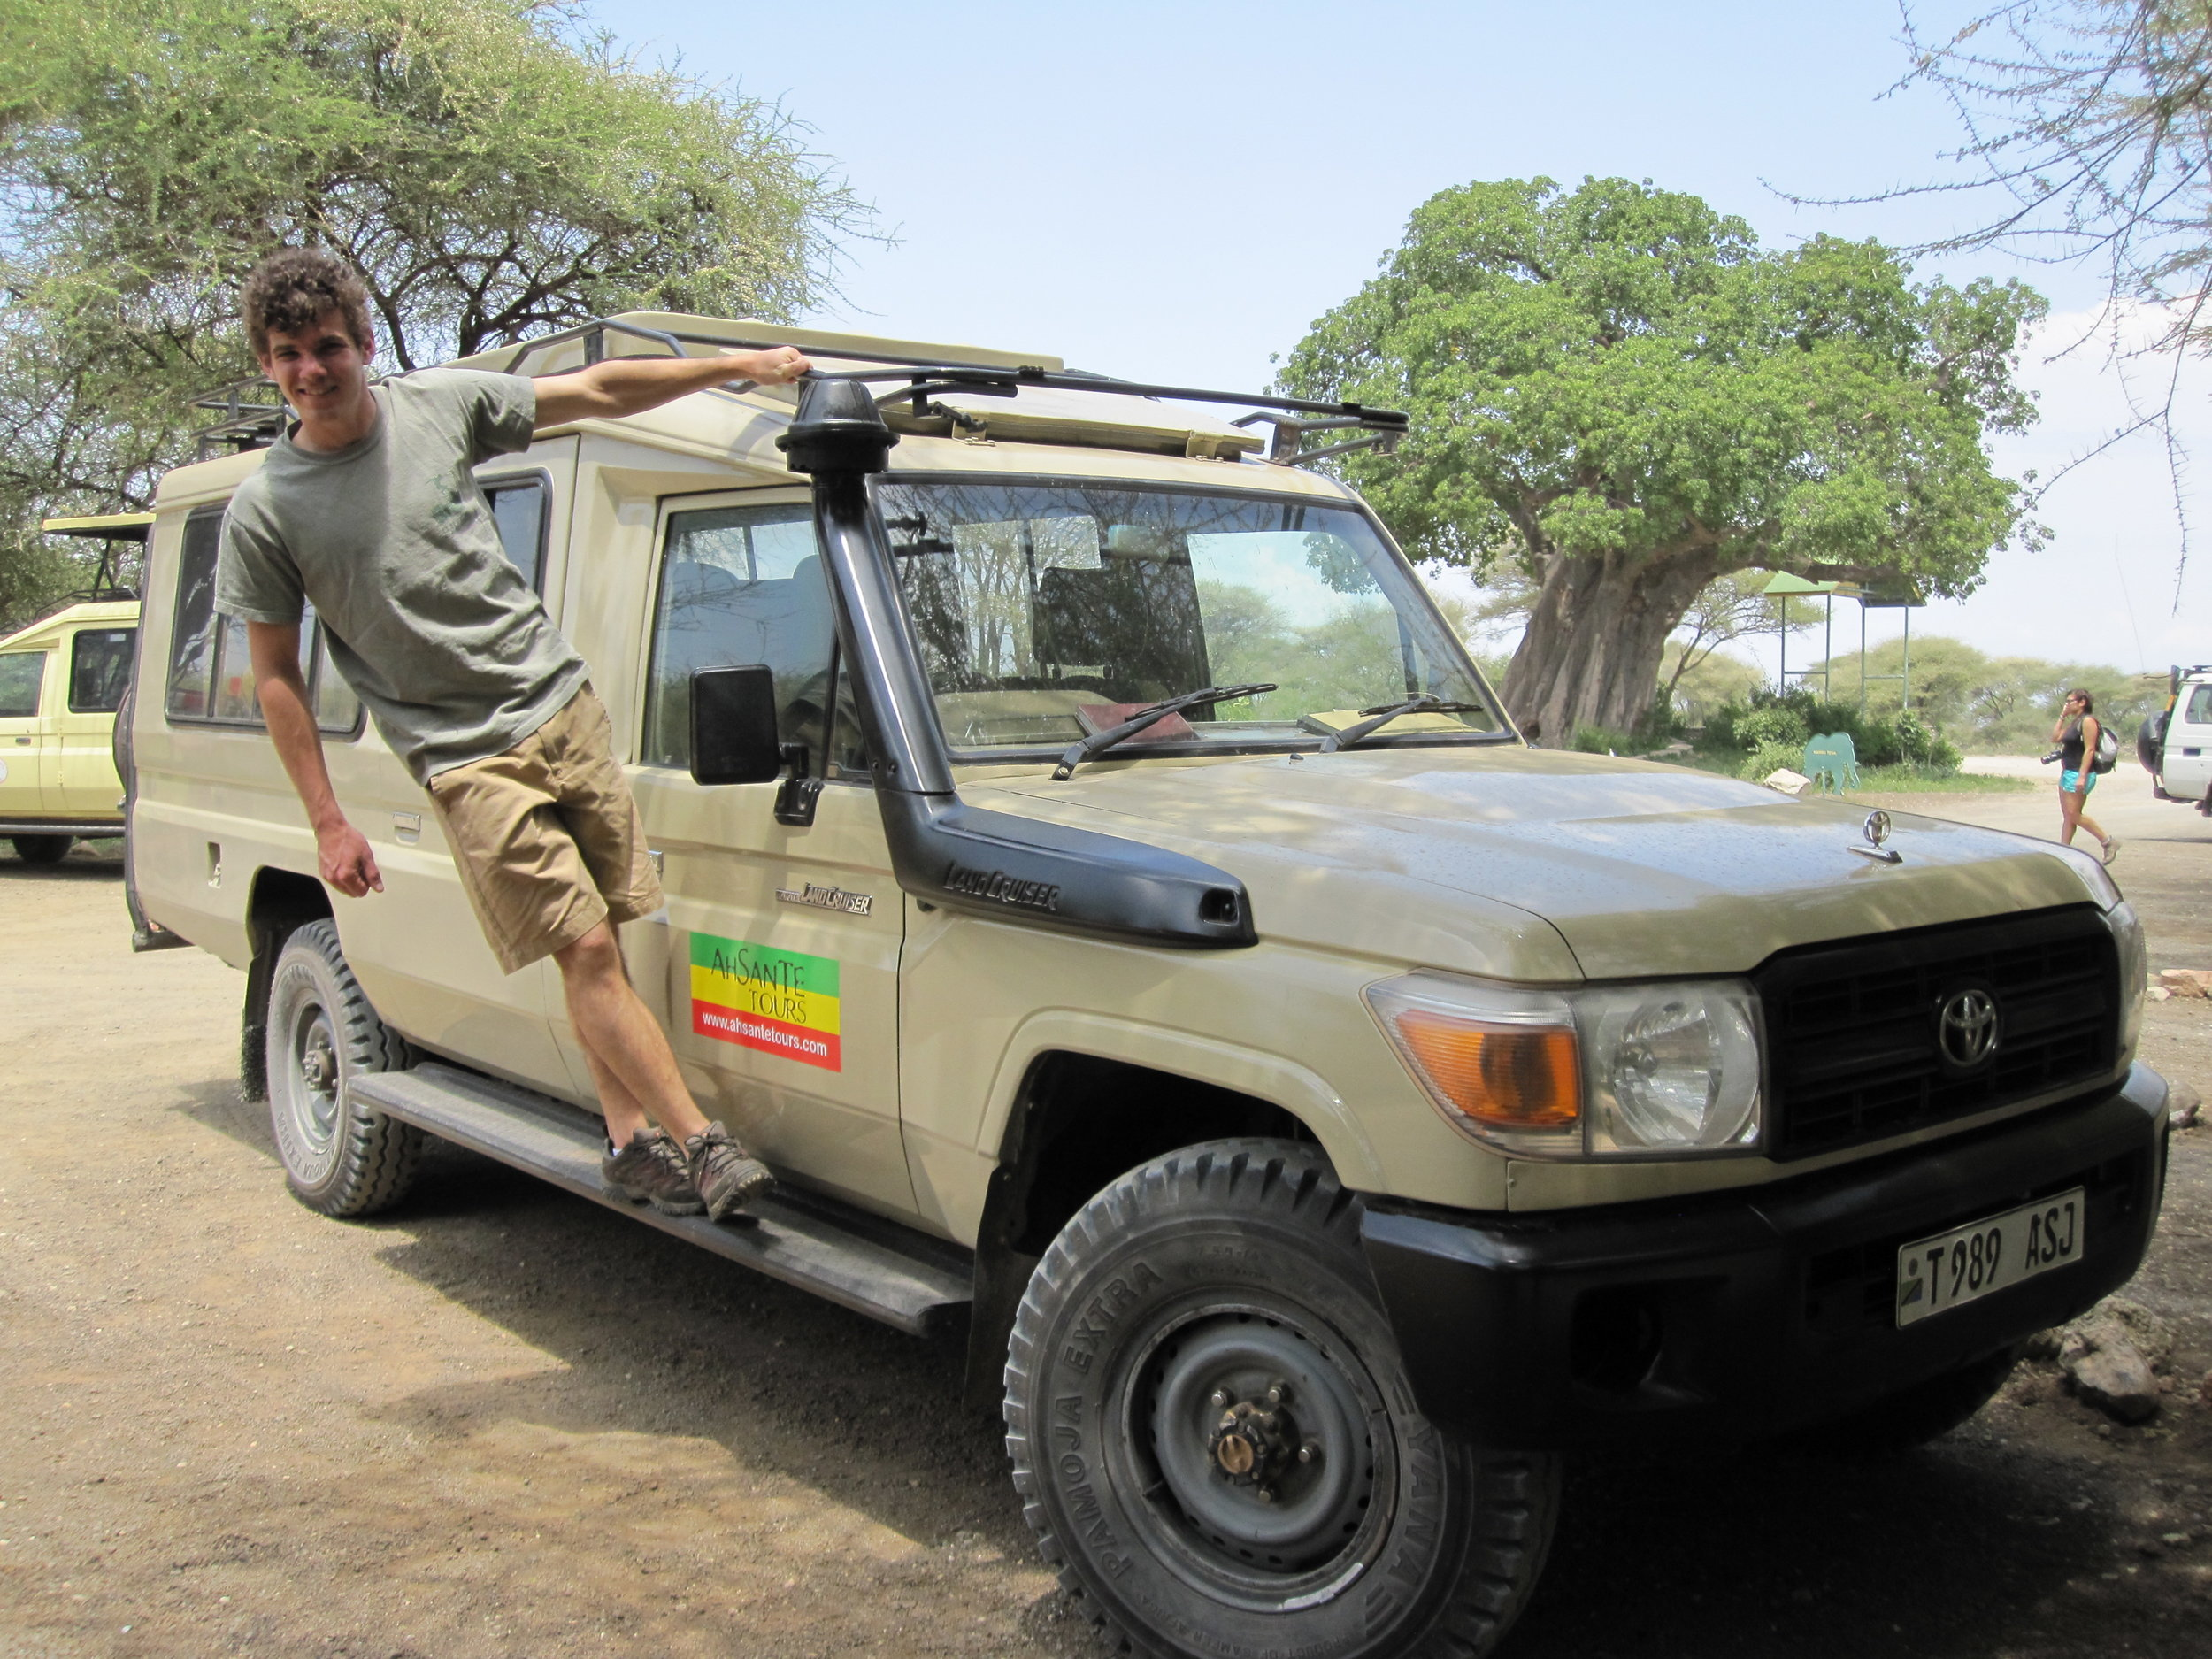 Playing around on our Land Cruiser on our safari with Ahsante Tours.